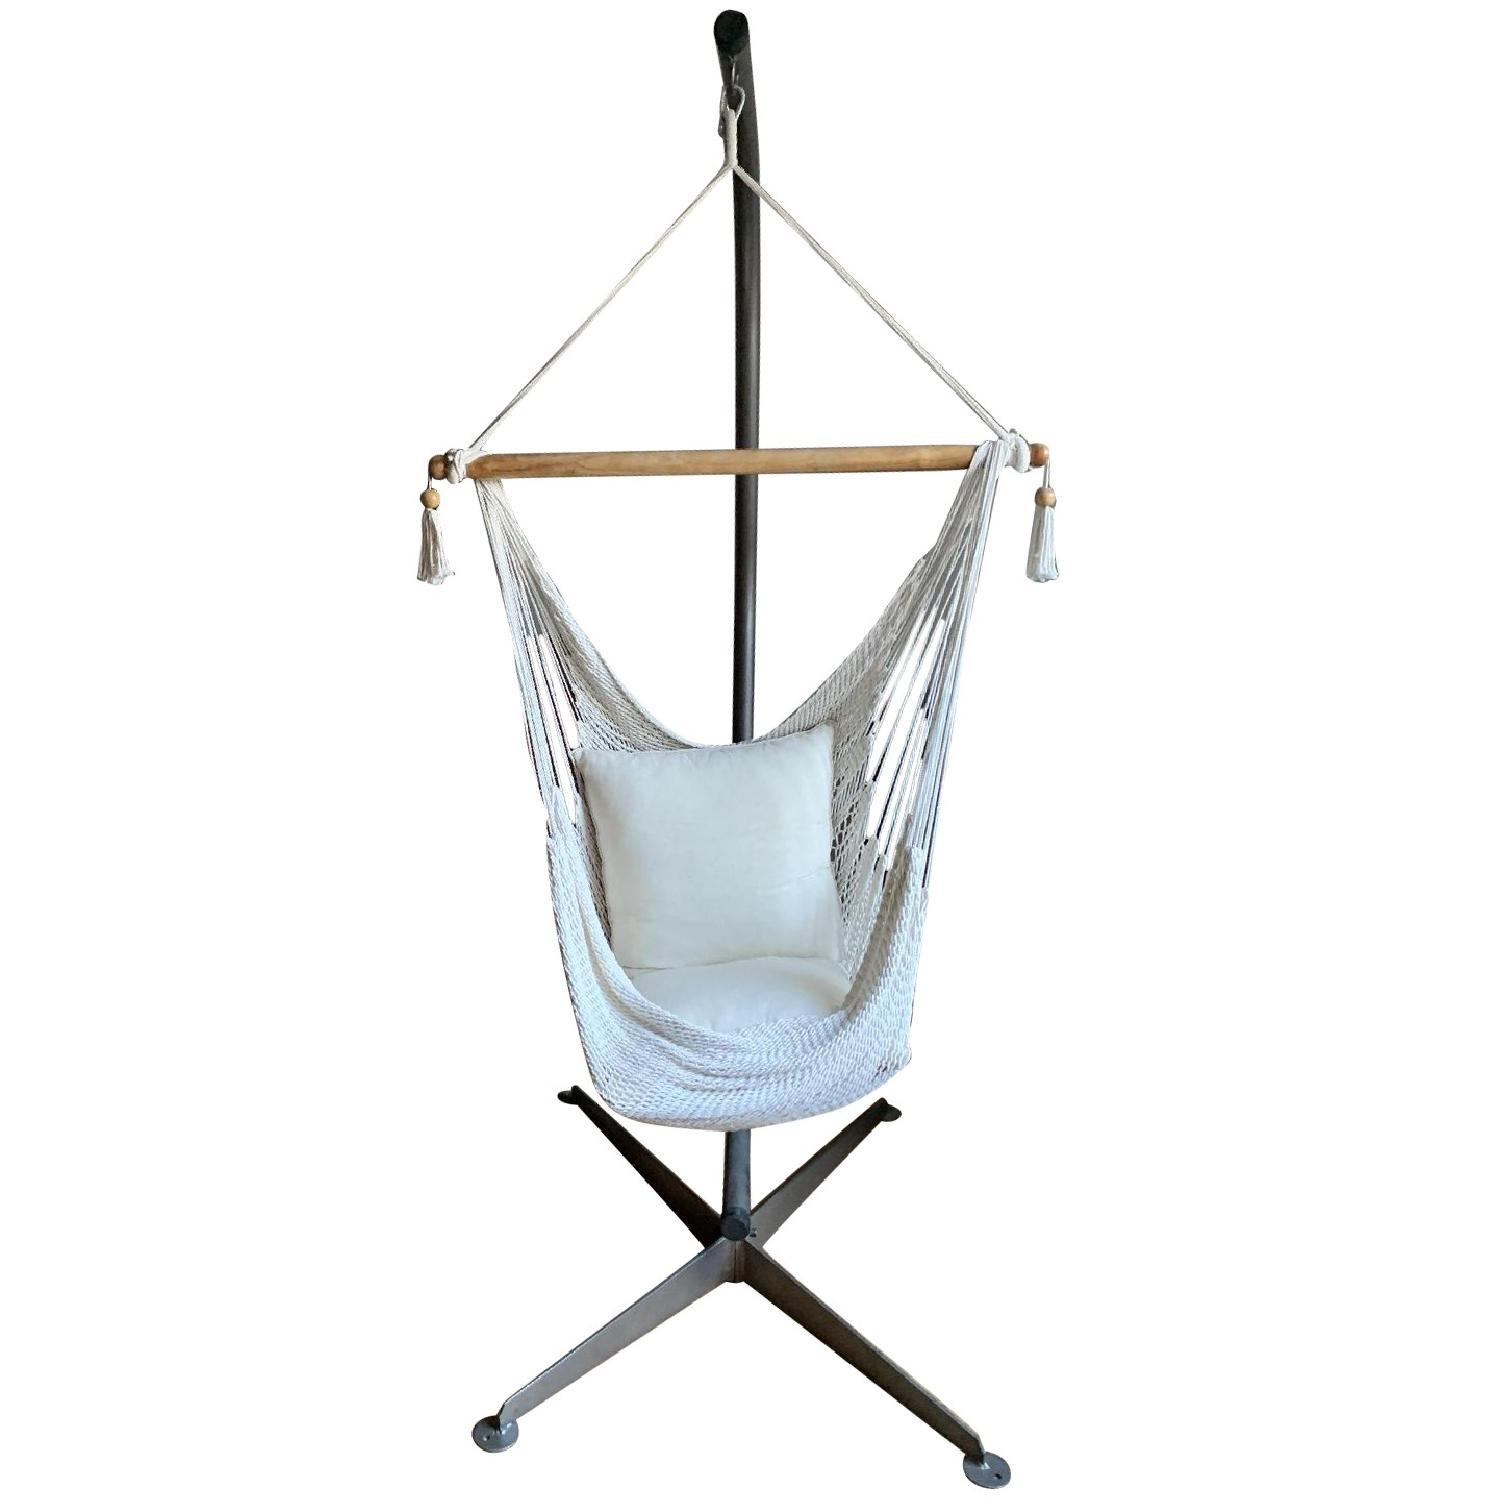 Hammock Chair w/ Stand - image-0